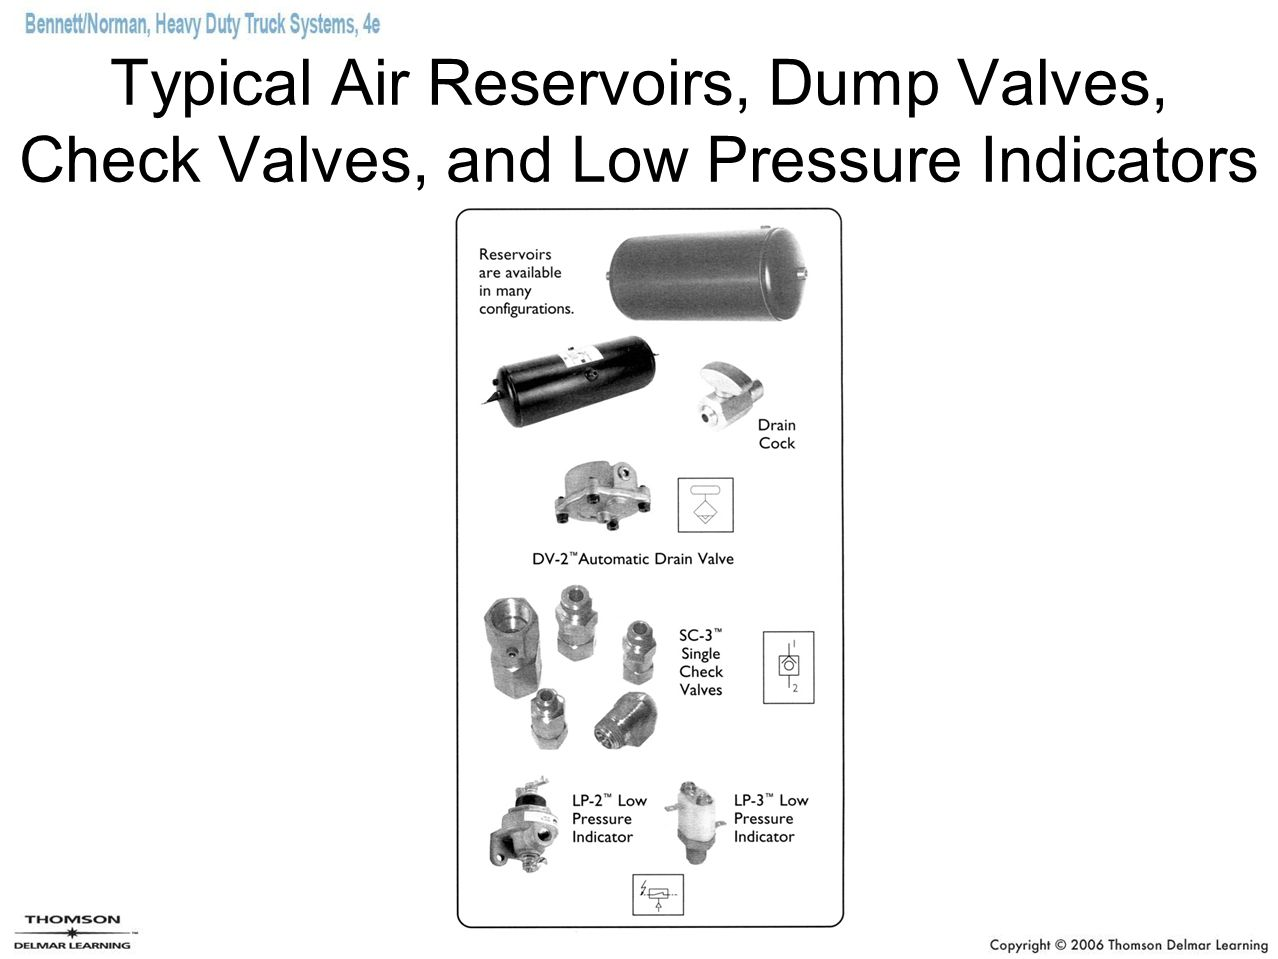 Typical Air Reservoirs, Dump Valves, Check Valves, and Low Pressure Indicators